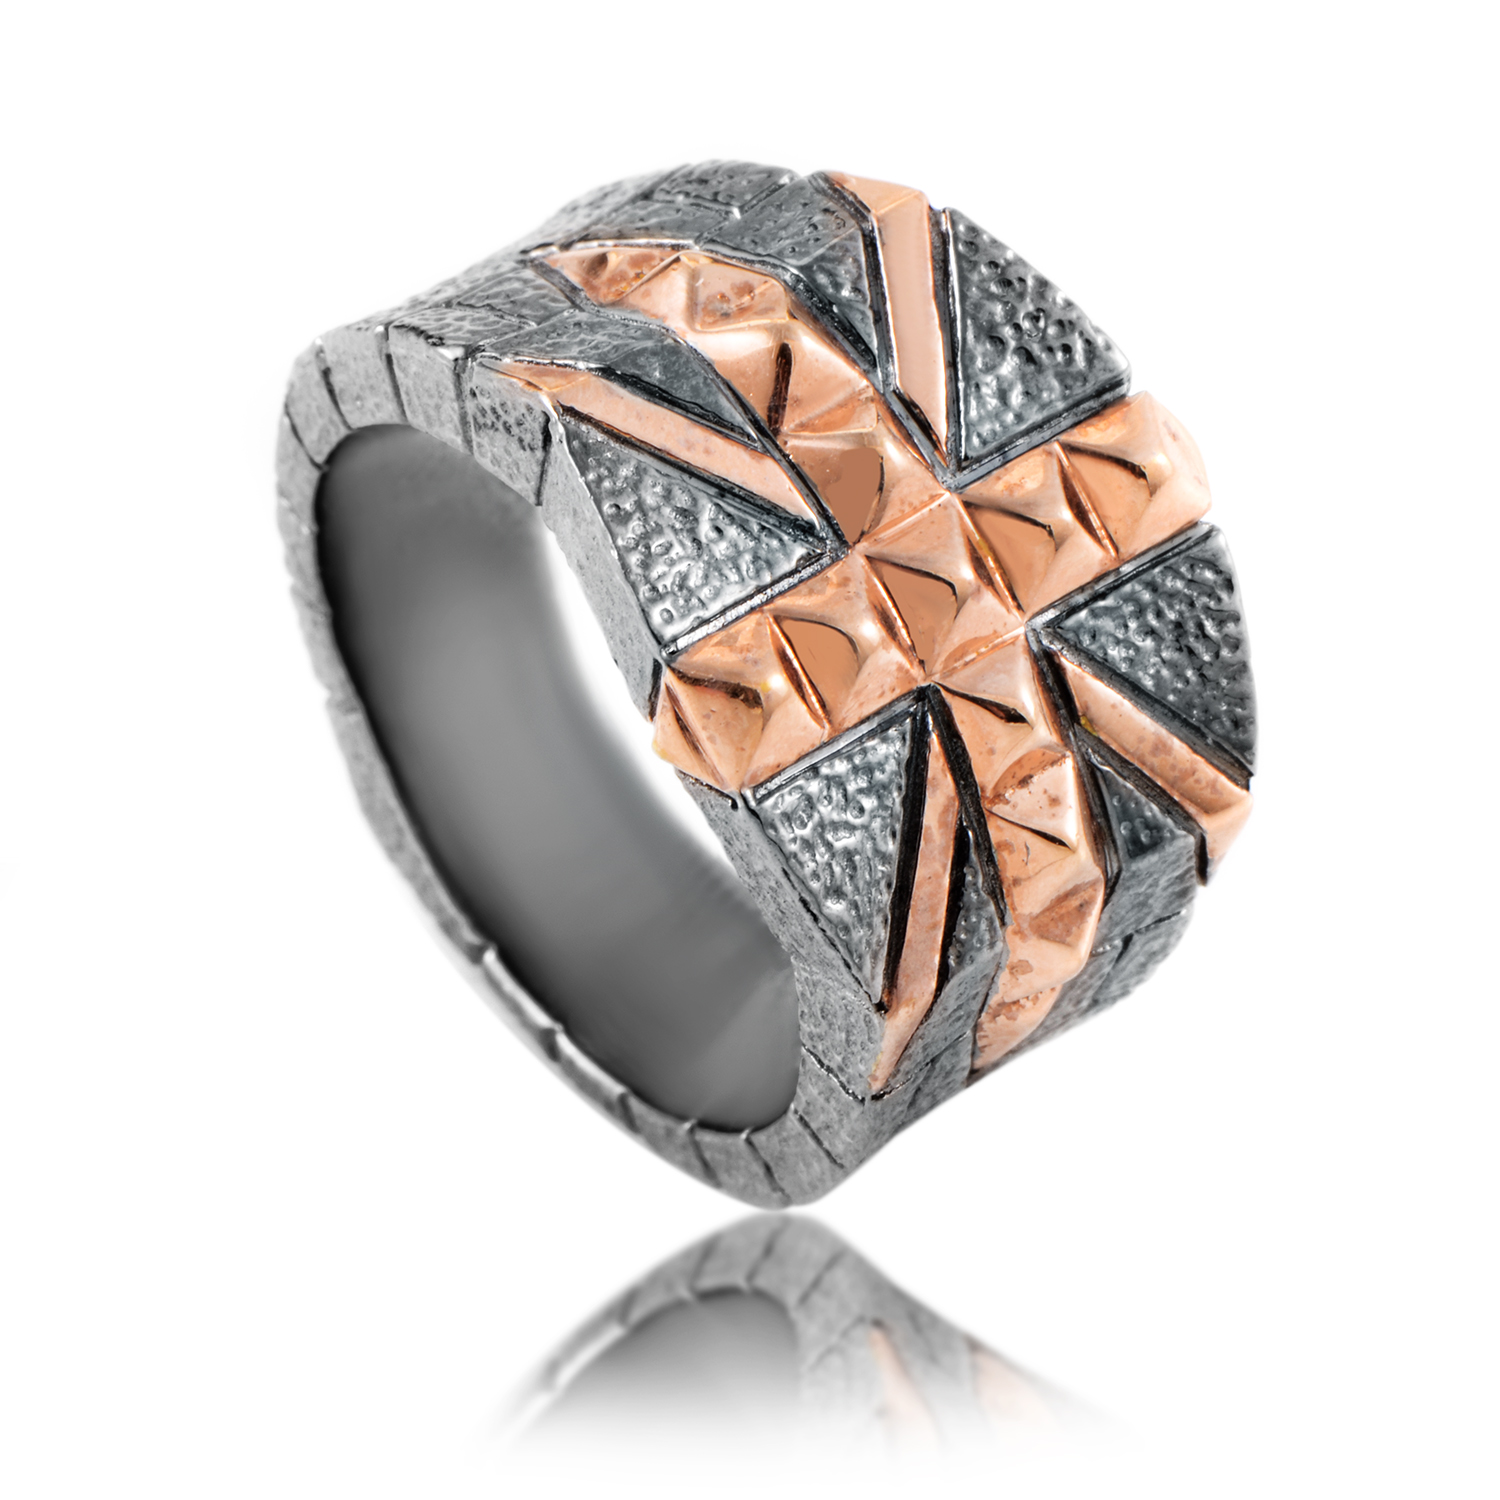 Alchemy in the UK Silver Gold-Plated Union Jack Ring 3013705002